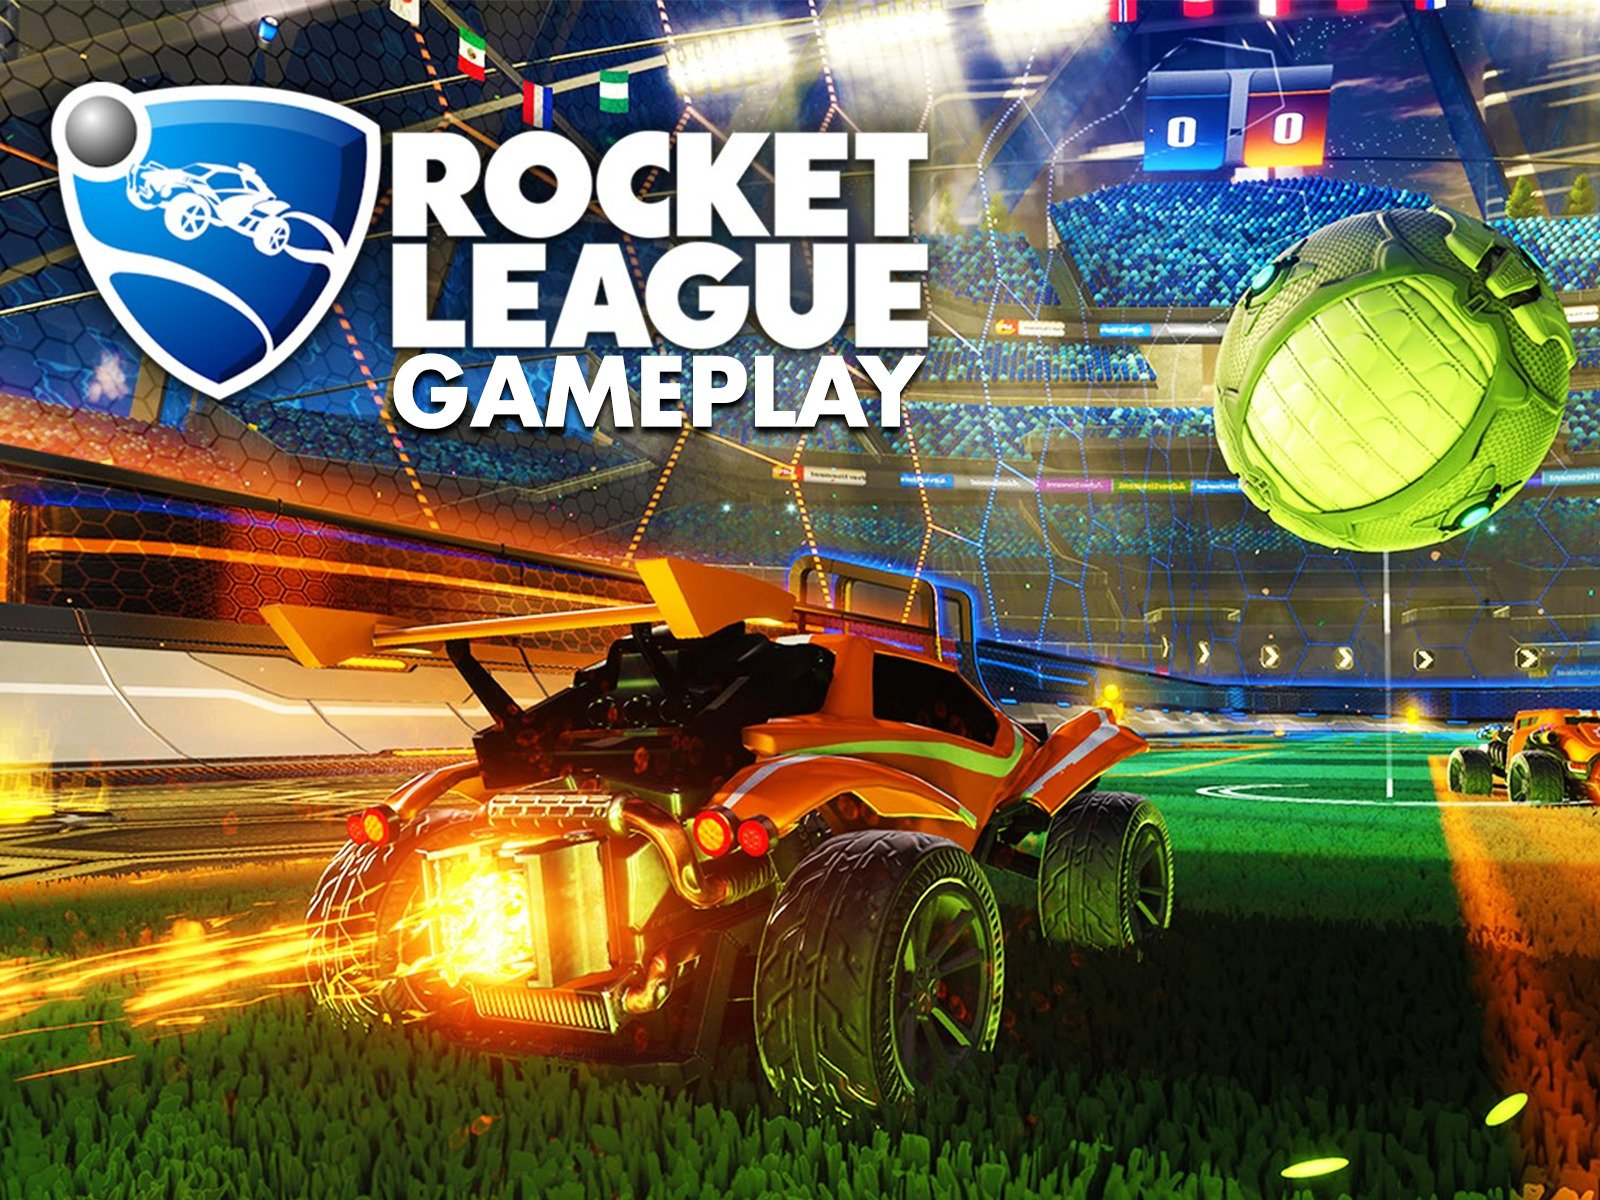 watch clip rocket league gameplay on amazon prime